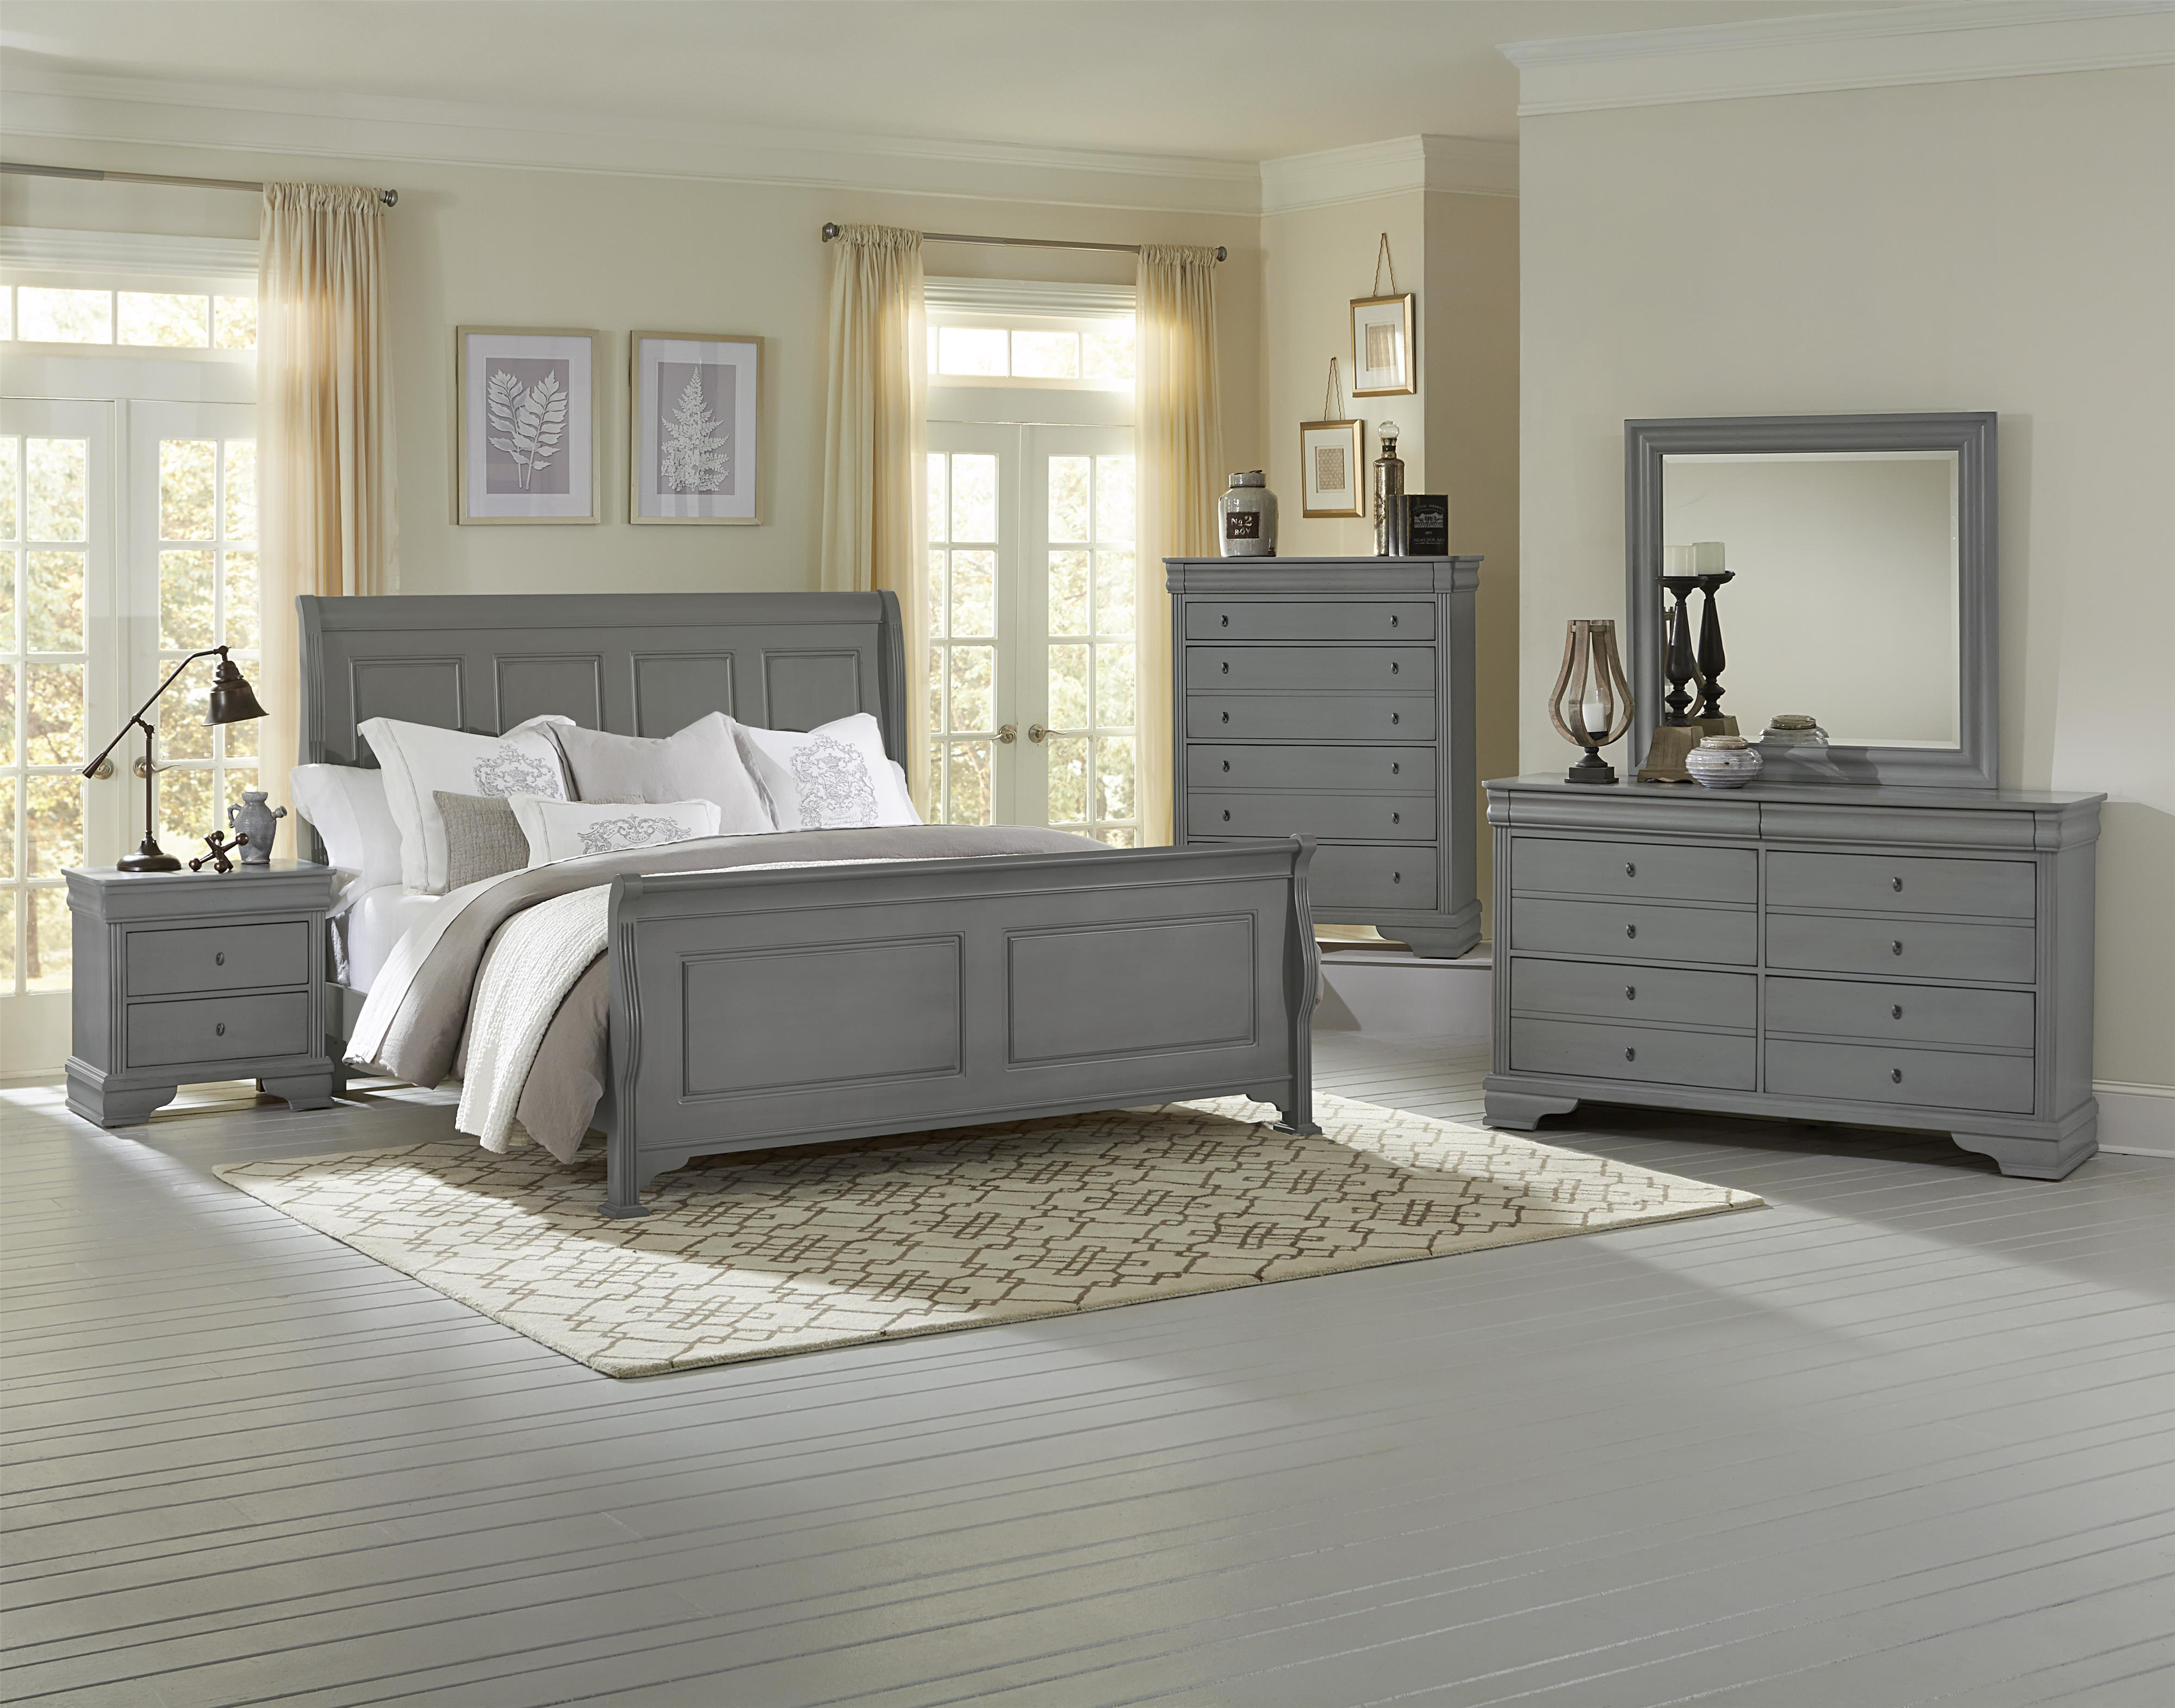 bedroom ii piece of ayeda america shipping product overstock and transitional mirror furniture home adea dresser garden set today free